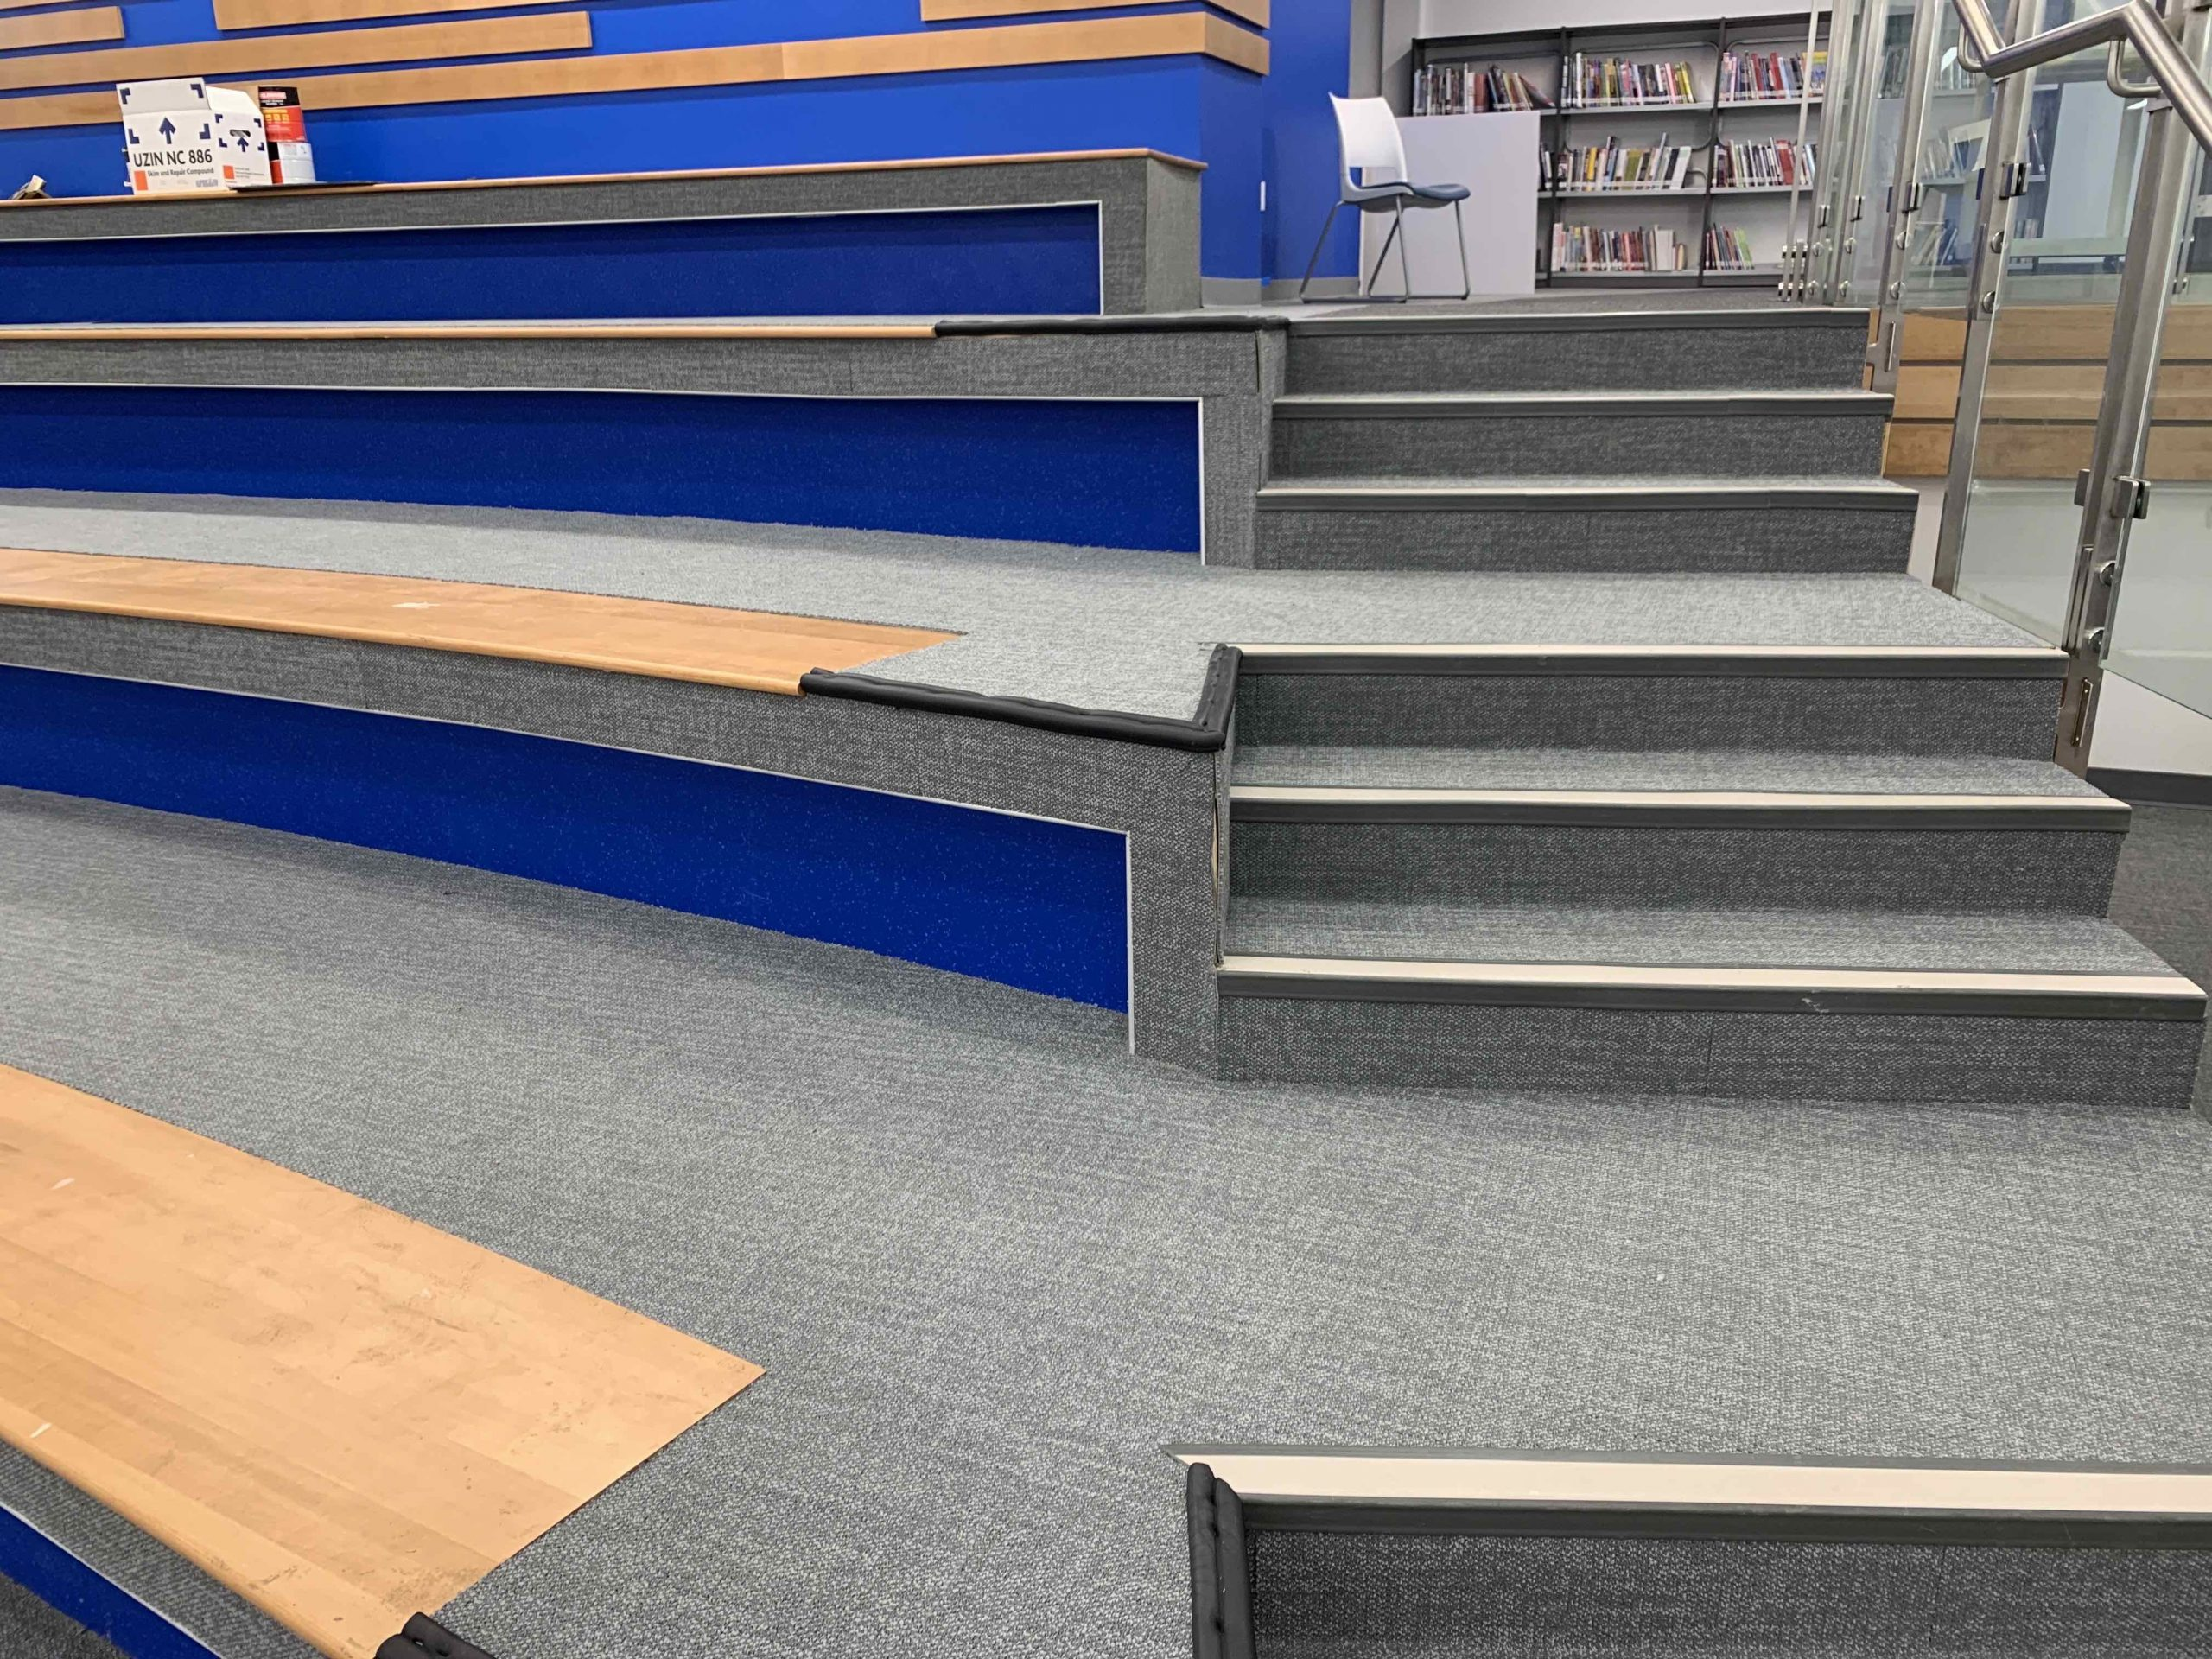 Library Learning Stairs image 1